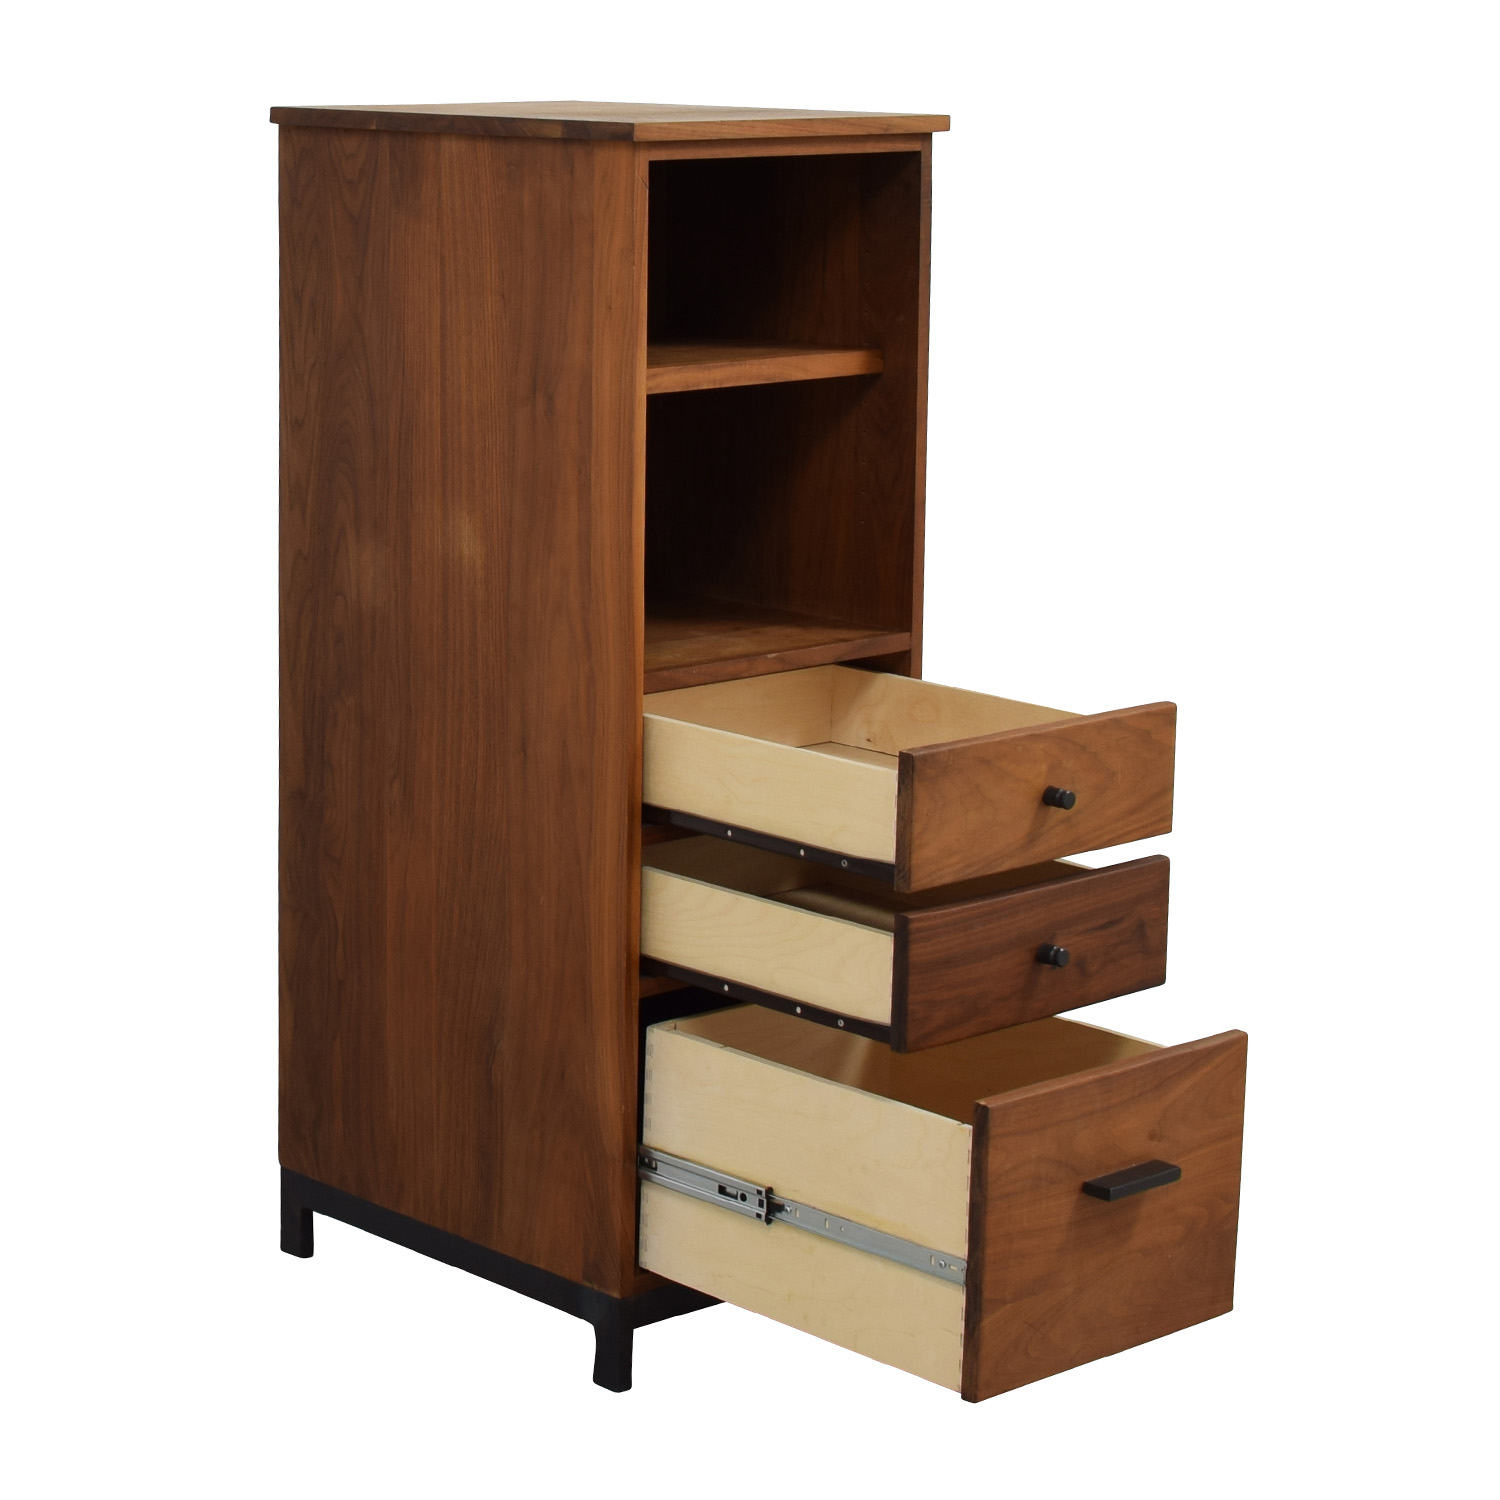 buy Crate and Barrel Tall Dresser or Shelf Crate and Barrel Dressers